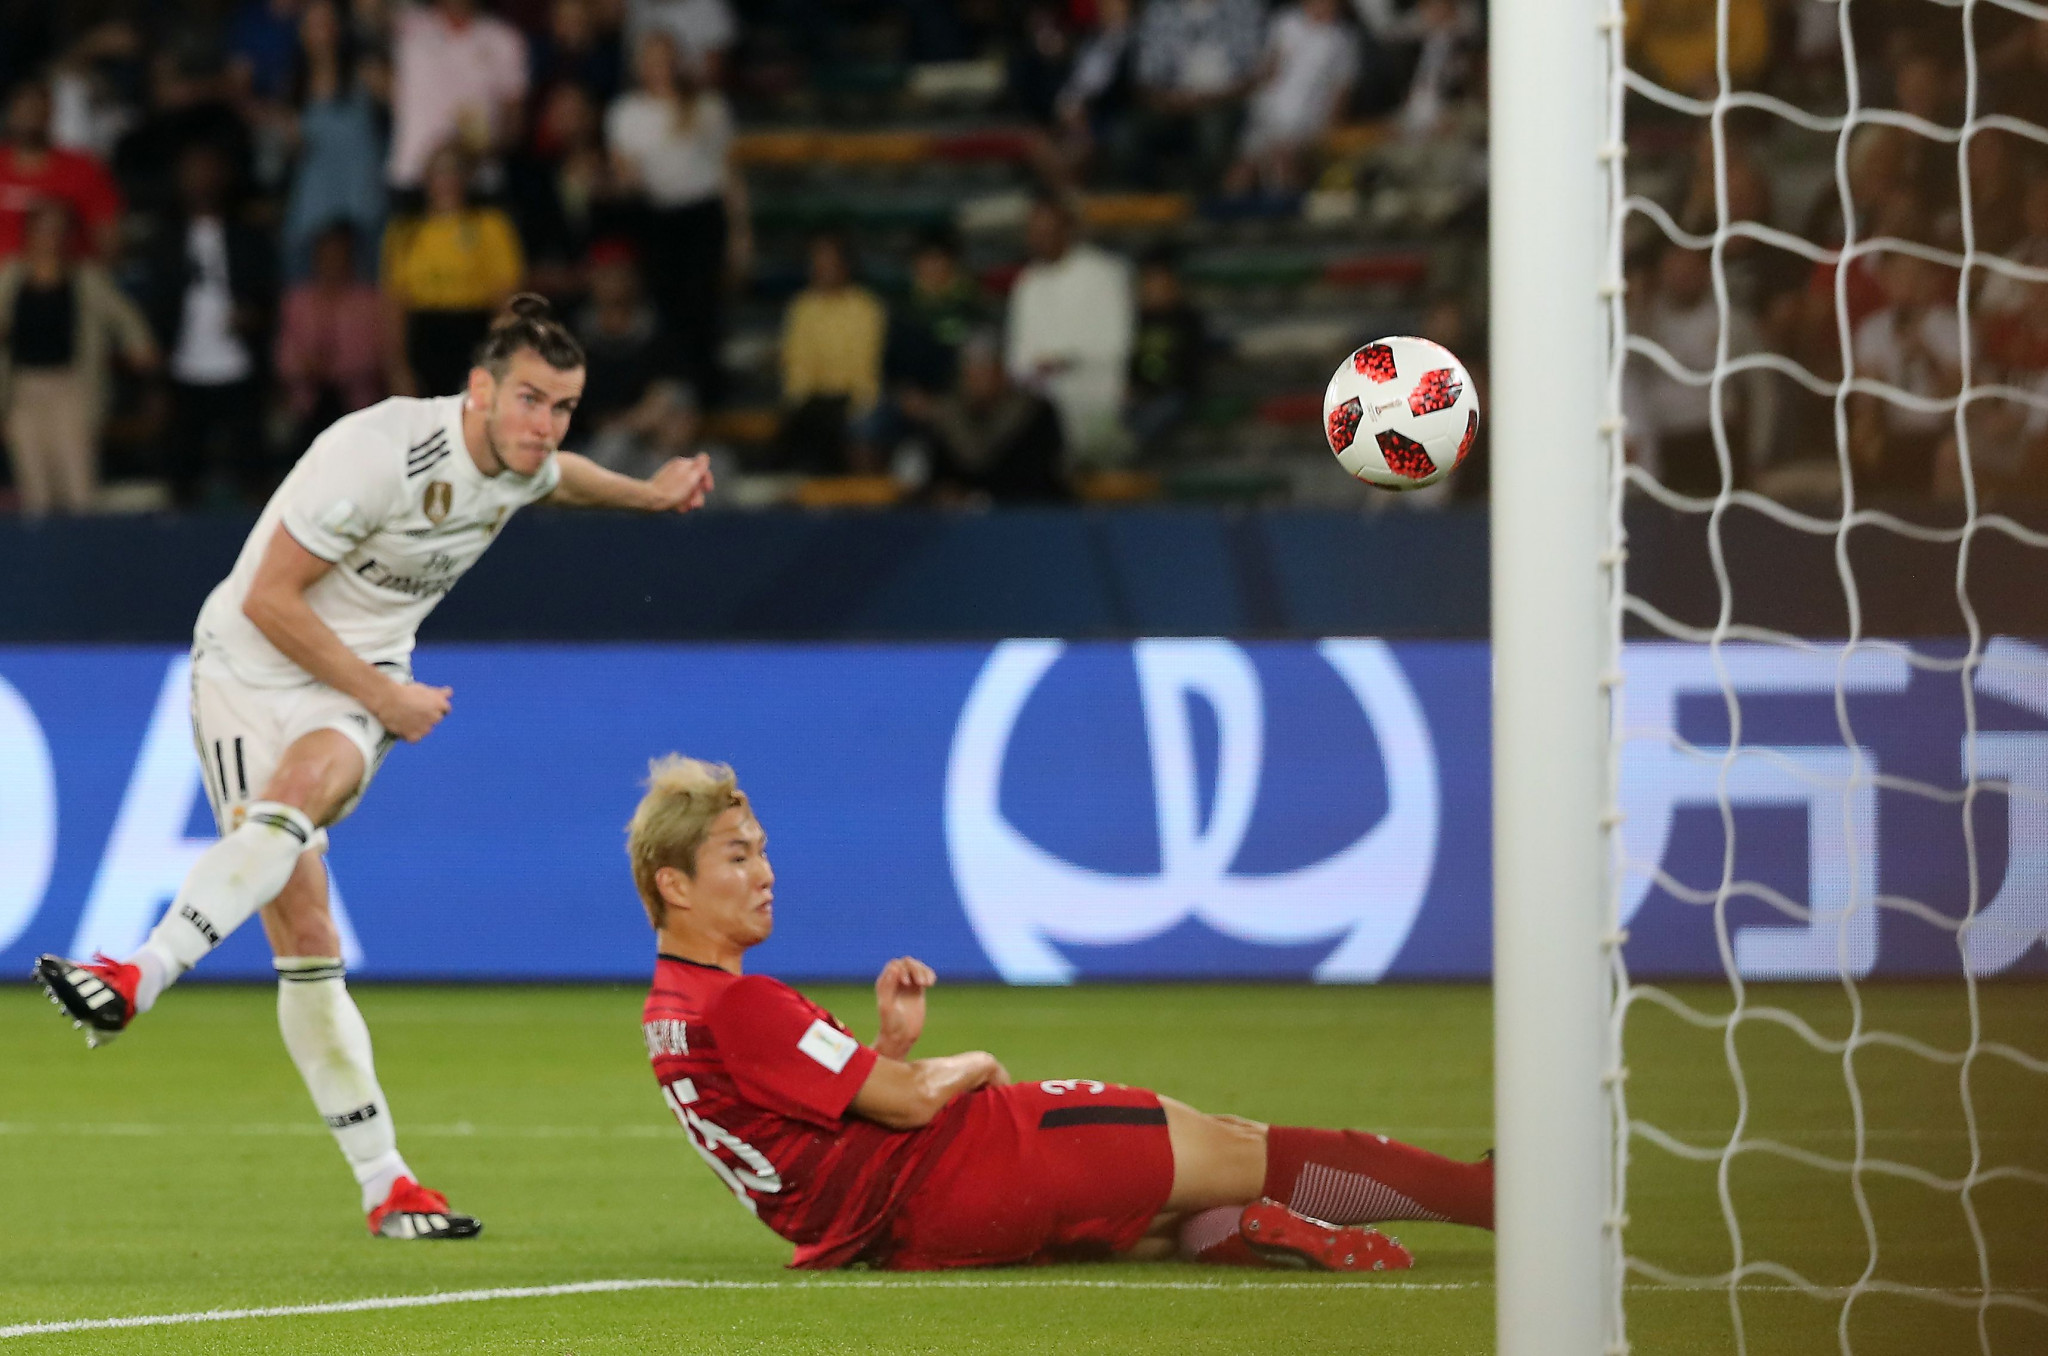 Bale hat-trick sees Real Madrid power past Kashima Antlers at FIFA Club World Cup